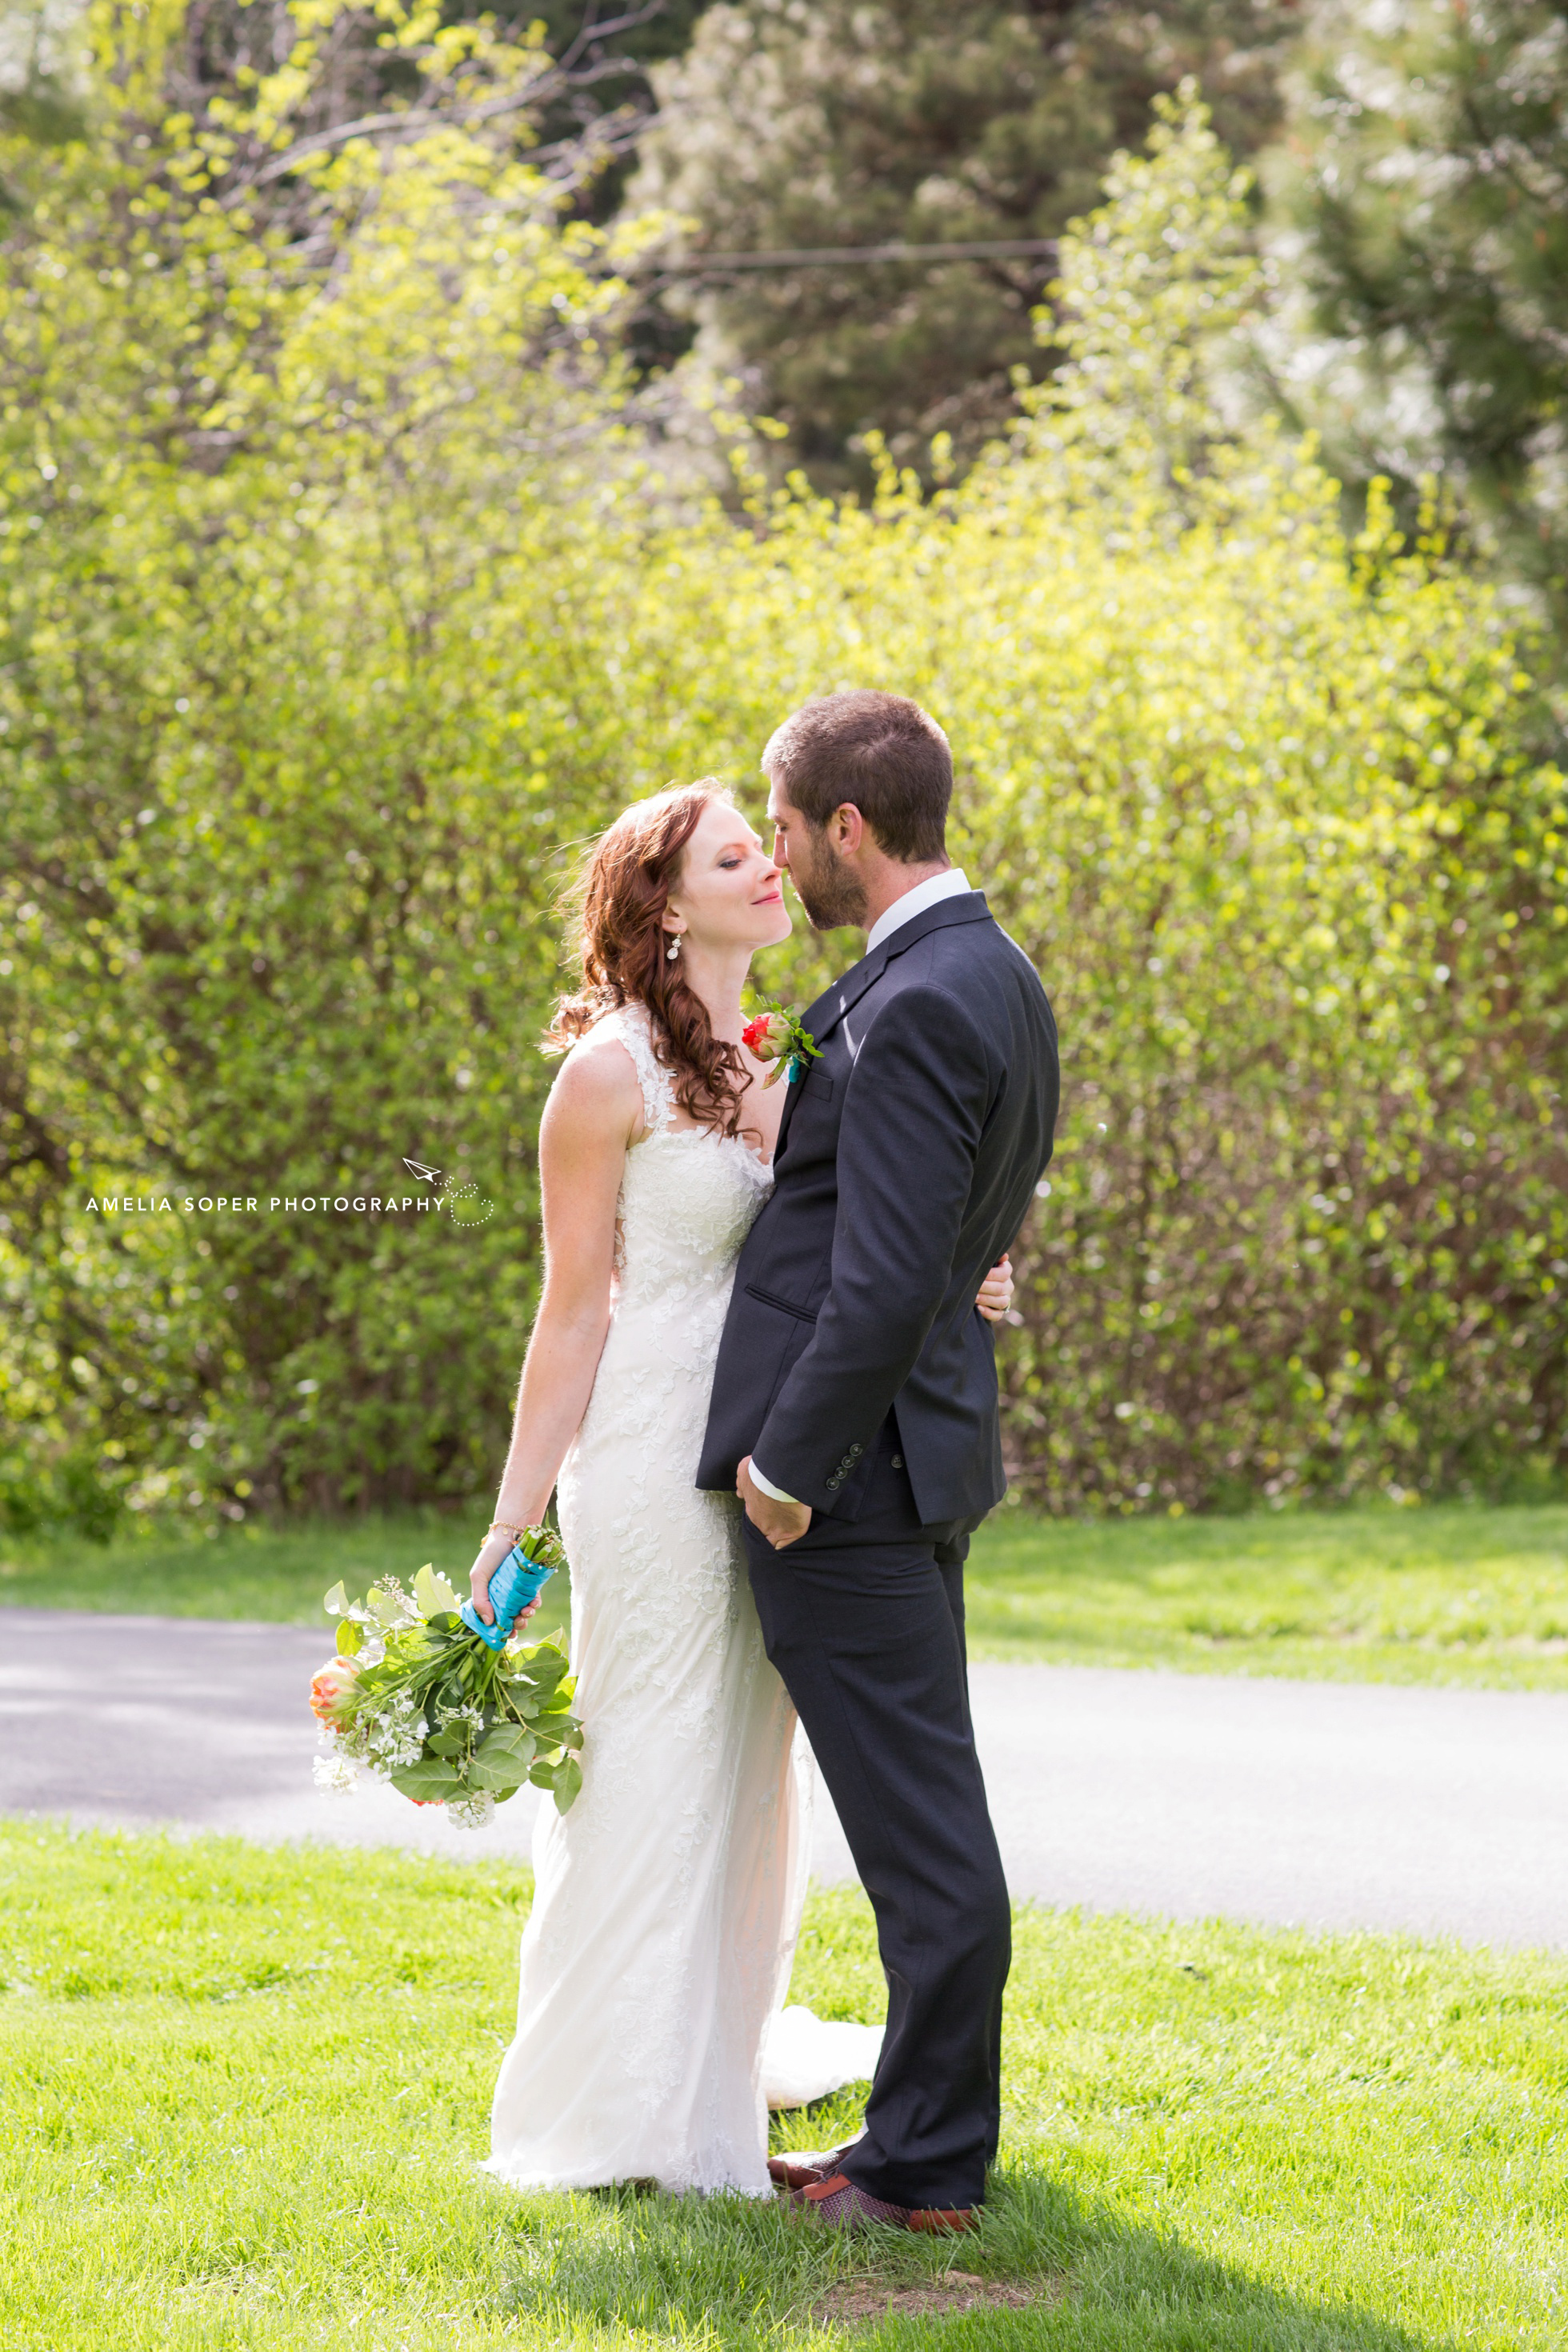 Gorgeous red head with natural dewy wedding makeup and hair. Click to see more of this Leavenworth wedding at Mountain Springs Lodge in the PNW.